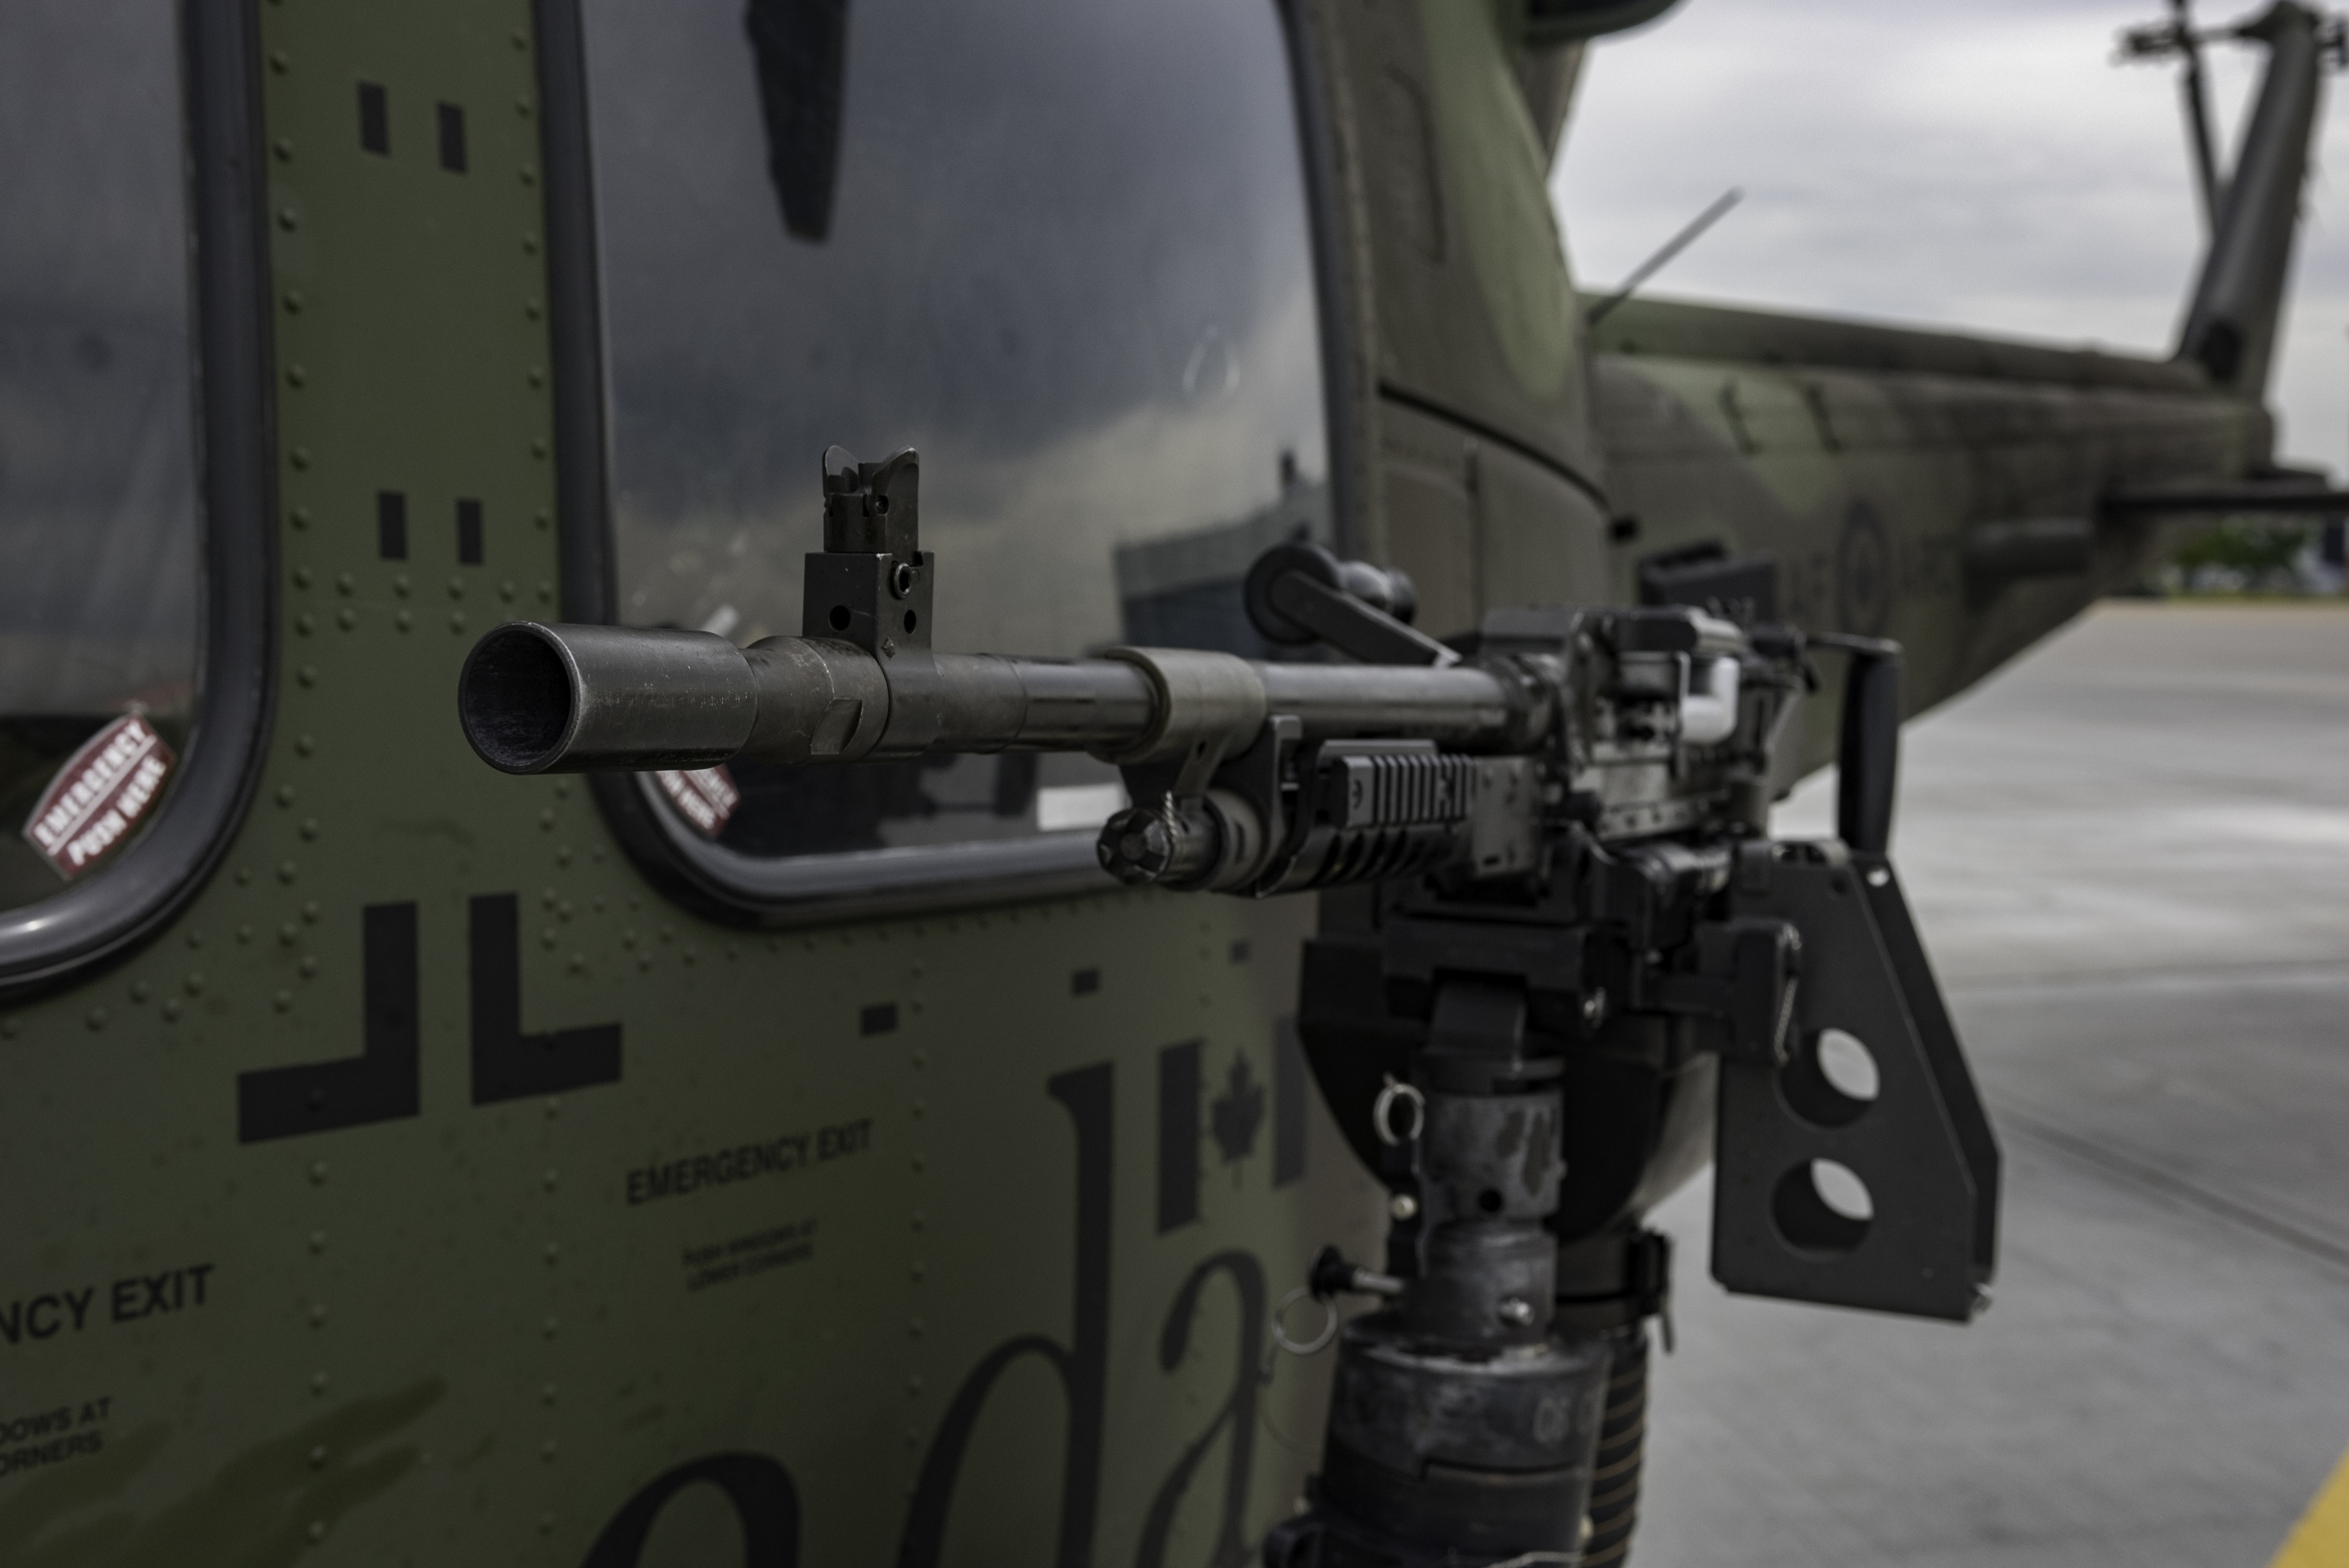 408 Tactical Helicopter Squadron CH-146 Griffon helicopters that participated in Gander Gunner in July, at 4 Wing Cold Lake, Alberta, were configured with dual, side mounted C6 machine guns. PHOTO: Private Connie Valin